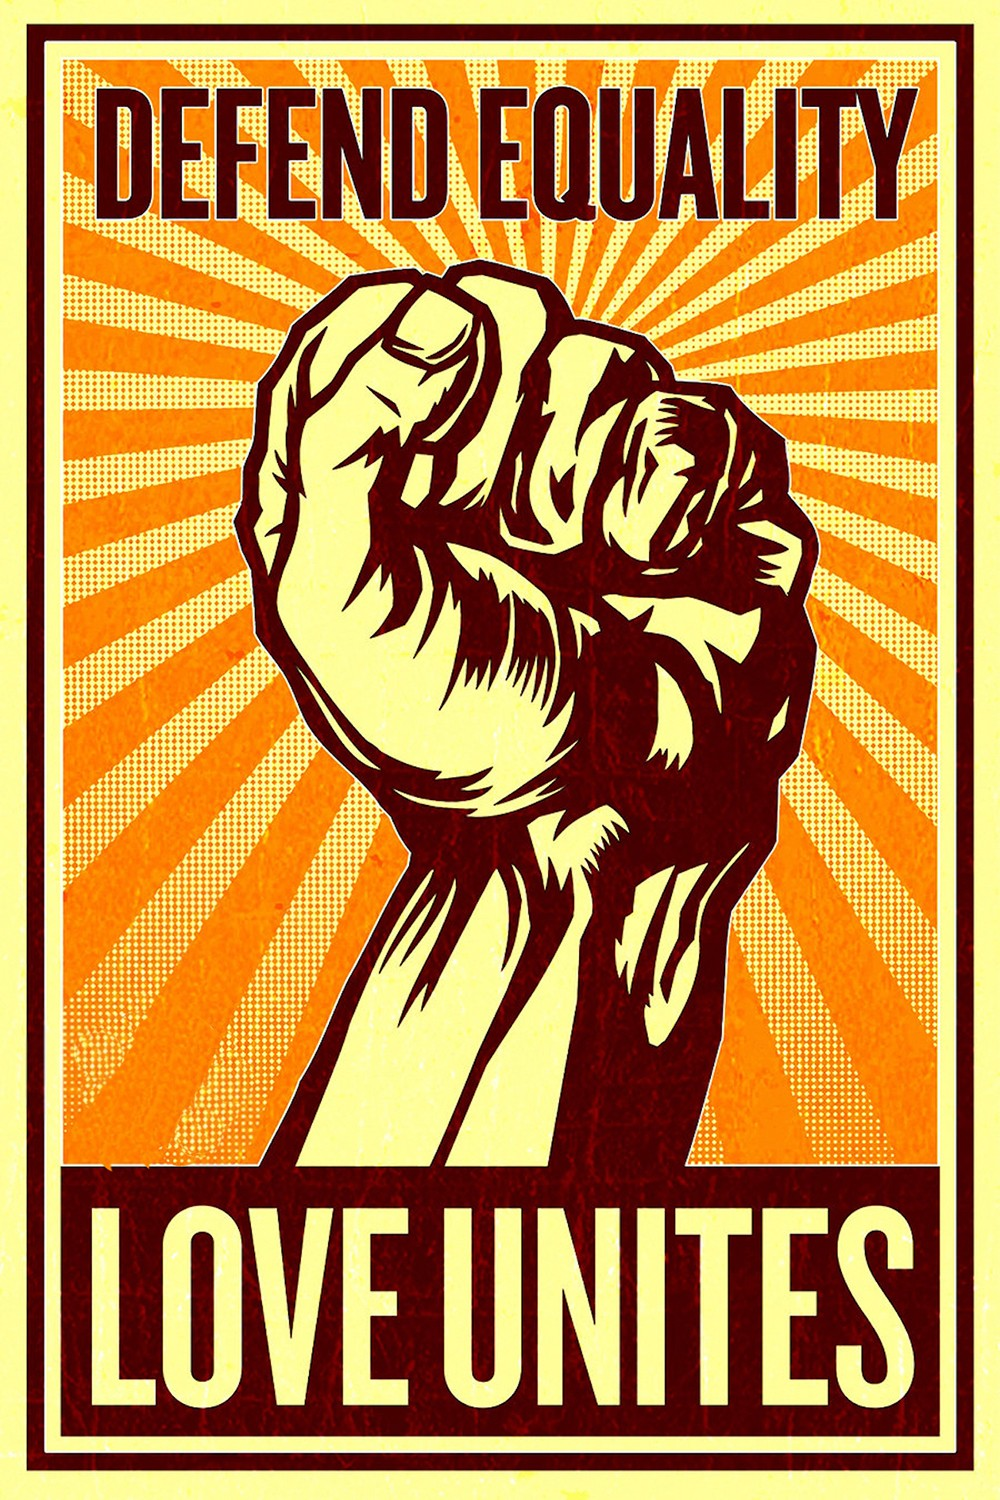 00 Defend Equality Love Unites. 18.09.13